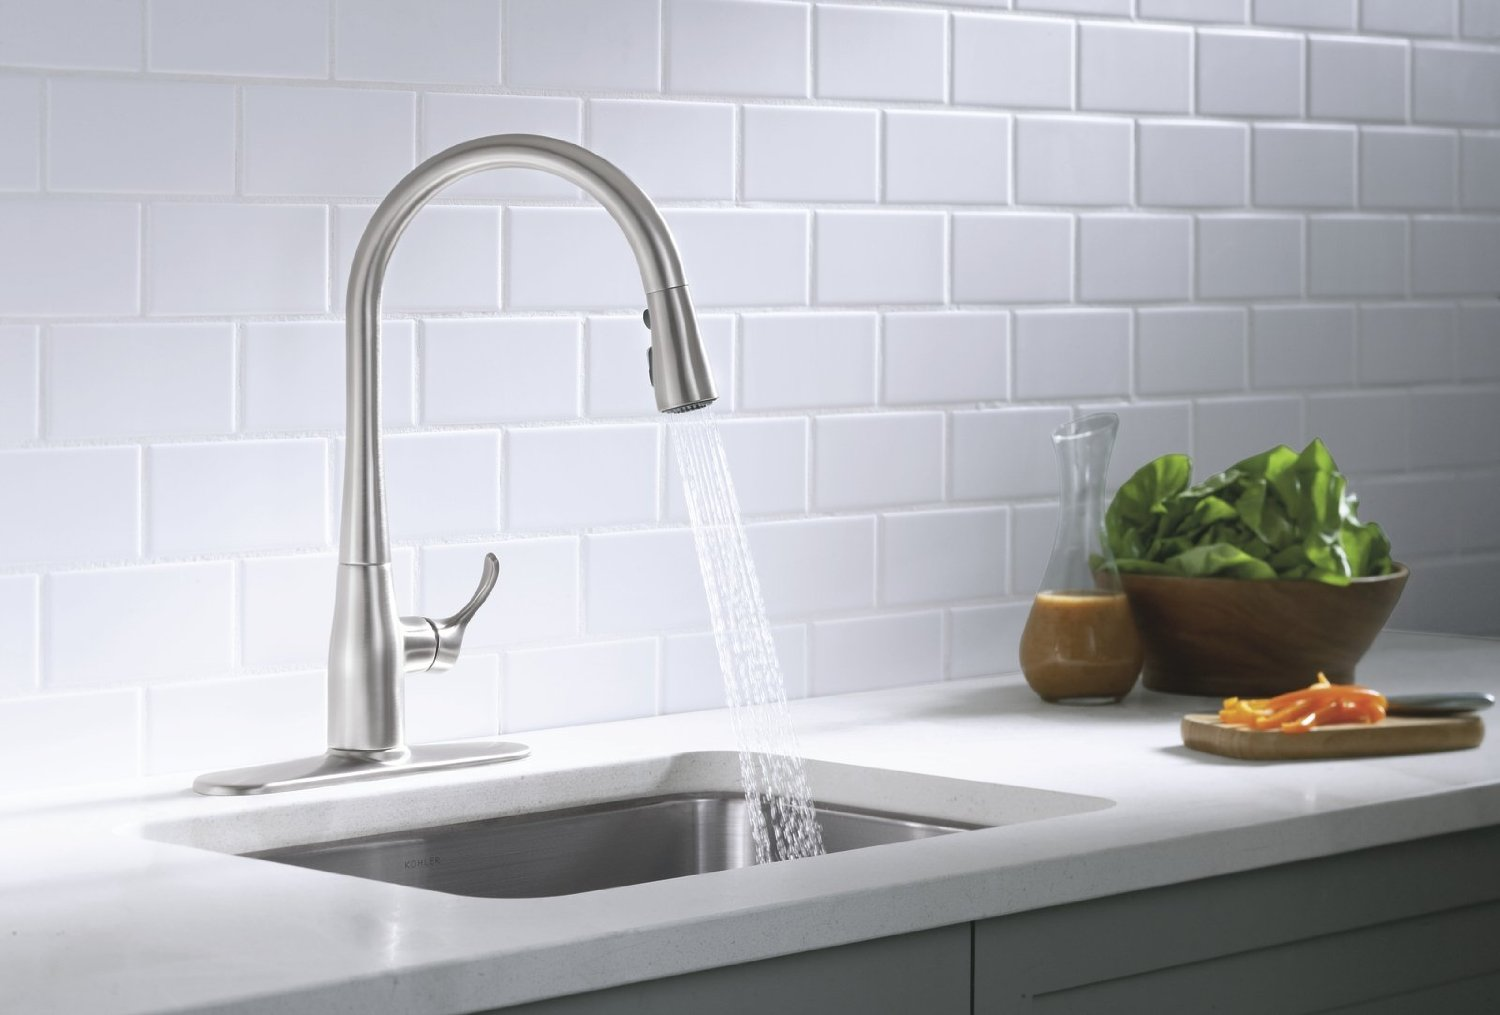 inspiring kitchen with kohler sinks and faucet plus white bricked wall